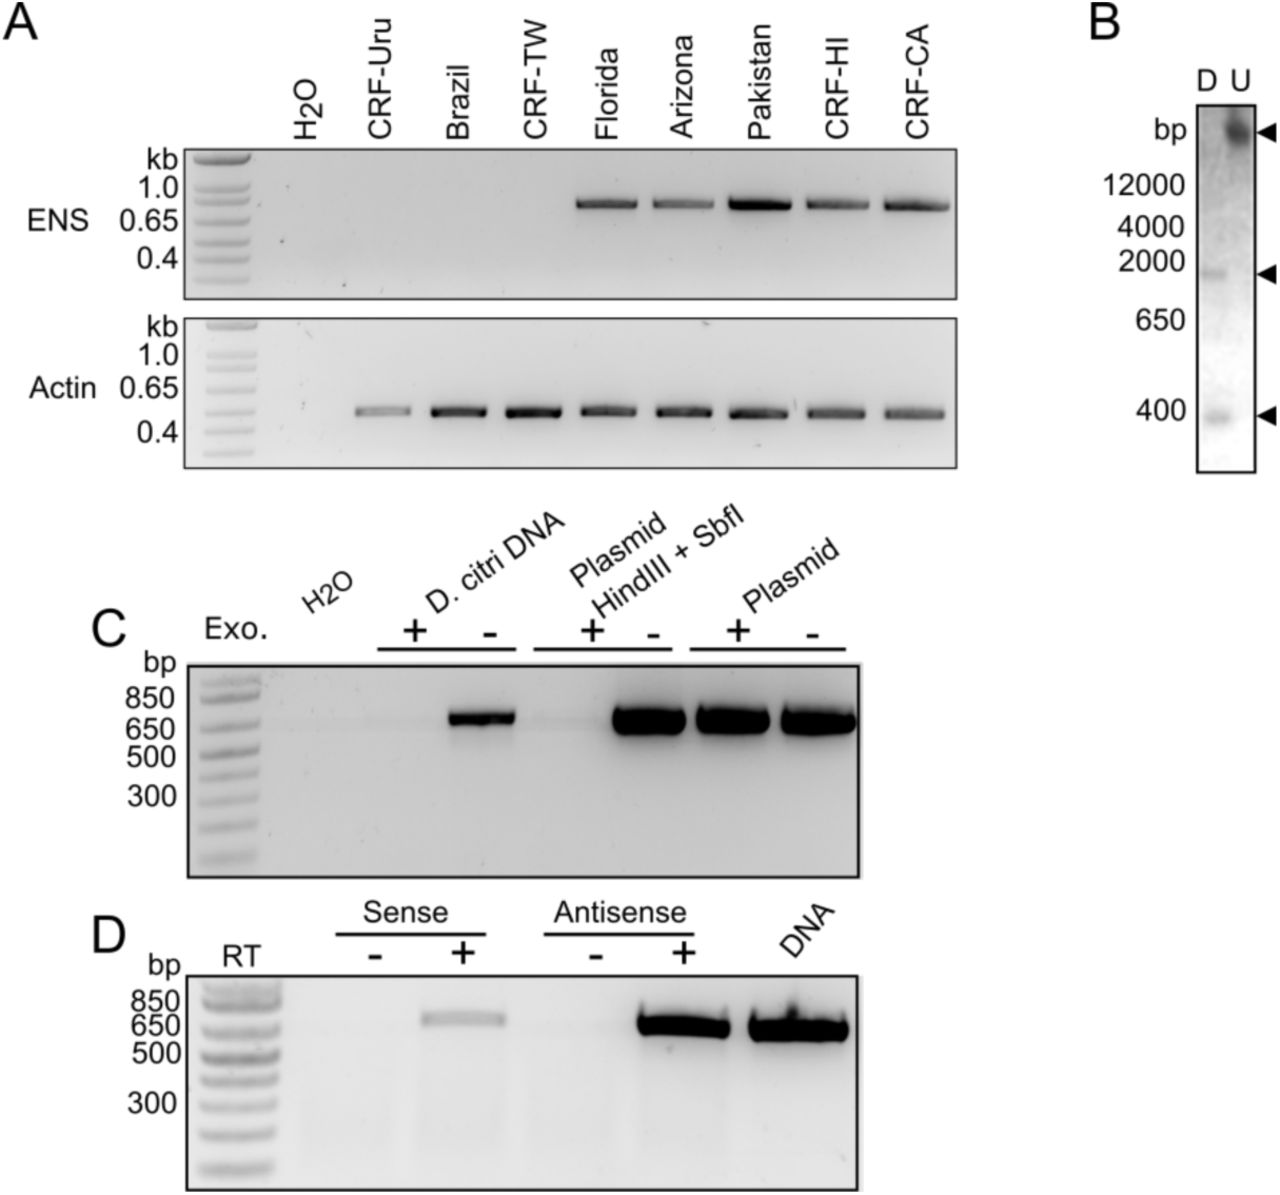 "ENS is a transcribed EVE that is unevenly distributed among distinct D. citri populations. (A) Upper: PCR products produced using primers flanking ENS (primers 2 and 8). Lower: PCR products produced using primers specific to D. citri actin (primers 9 and 10). (B) Southern blot of D. citri genomic DNA using an RNA probe based on the sequence of ENS; U = undigested, D = digested with PstI and <t>HindIII.</t> Upper arrow denotes ENS in undigested genomic DNA. Lower arrows denote cleavage products. (C) PCR products produced using primers 3 and 7 and the indicated DNA samples. ""Plasmid"" is a plasmid containing the full ENS sequence and ""Plasmid HindIII + SbfI"" is the same plasmid digested with HindIII and SbfI. DNA was left intact or digested with an exonuclease (Exo.) prior to PCR. (D) Primers 3 or 7 were used to generate cDNA from antisense or sense transcripts, respectively. cDNAs were used as templates for PCR using primers 3 and 7. DNA or cDNA prepared without reverse transcriptase (RT) served as controls."